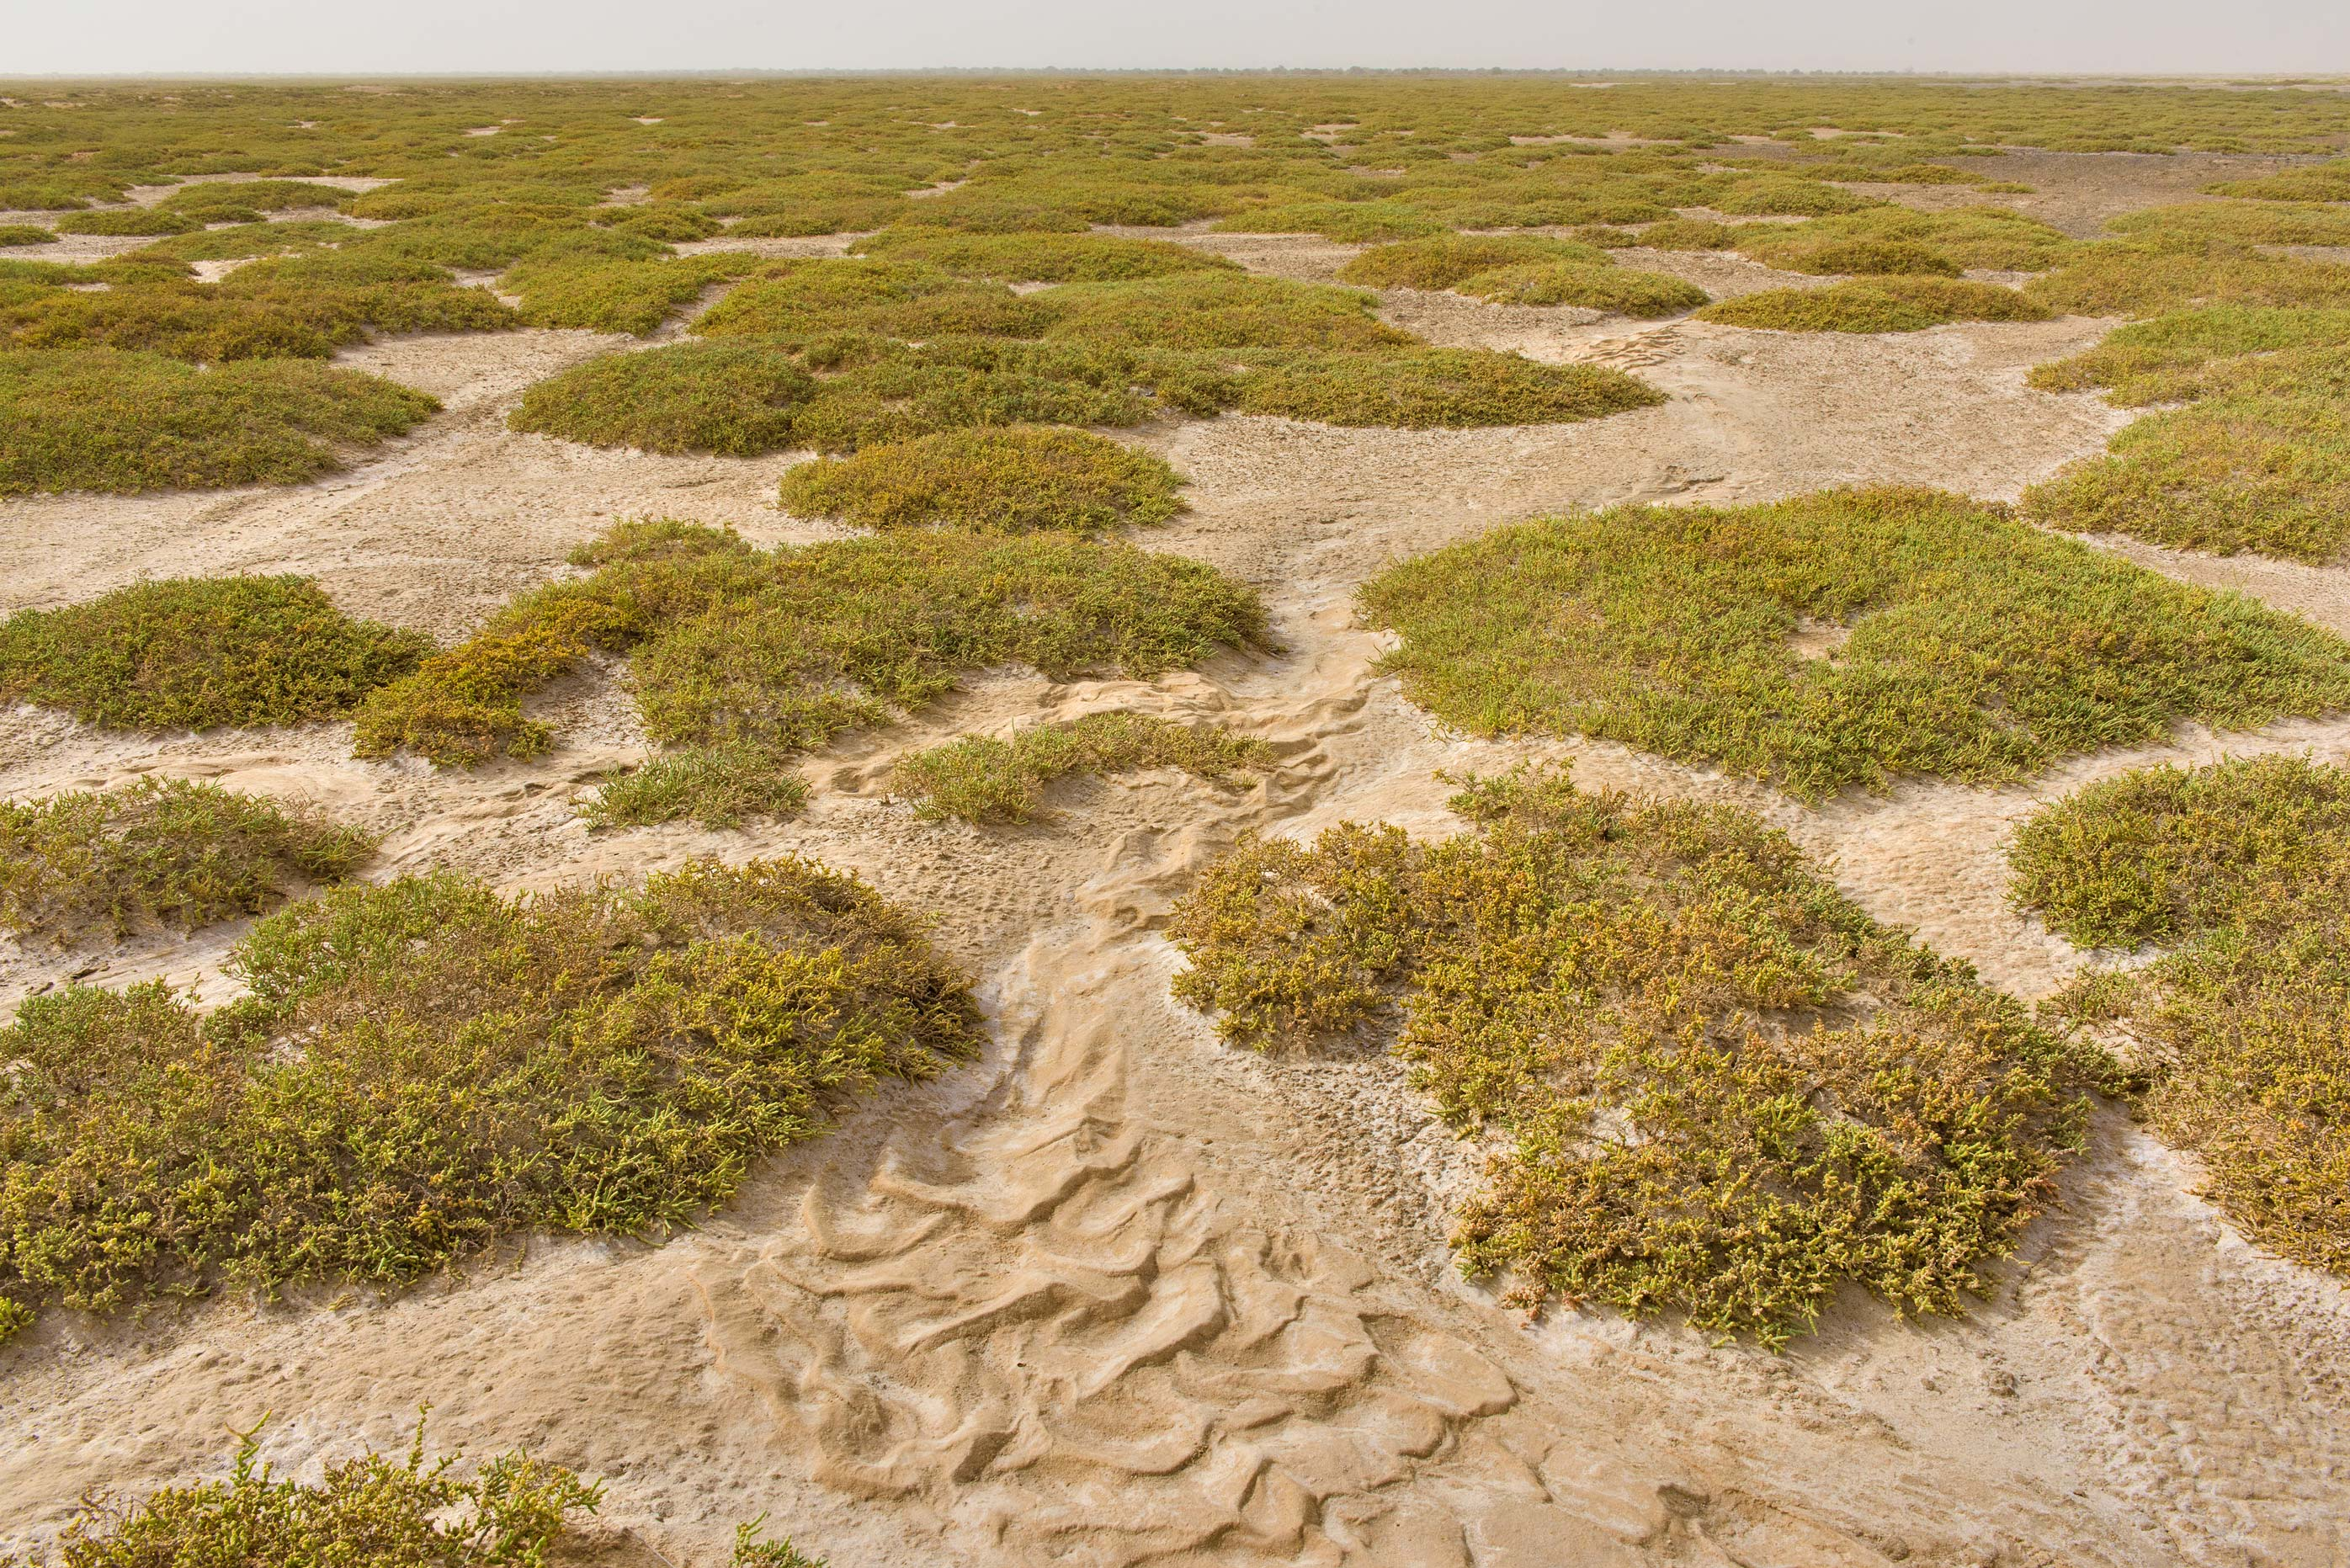 Mounds of jointed glasswort (Halocnemum...Al Qawar north from Al Thakhira. Qatar